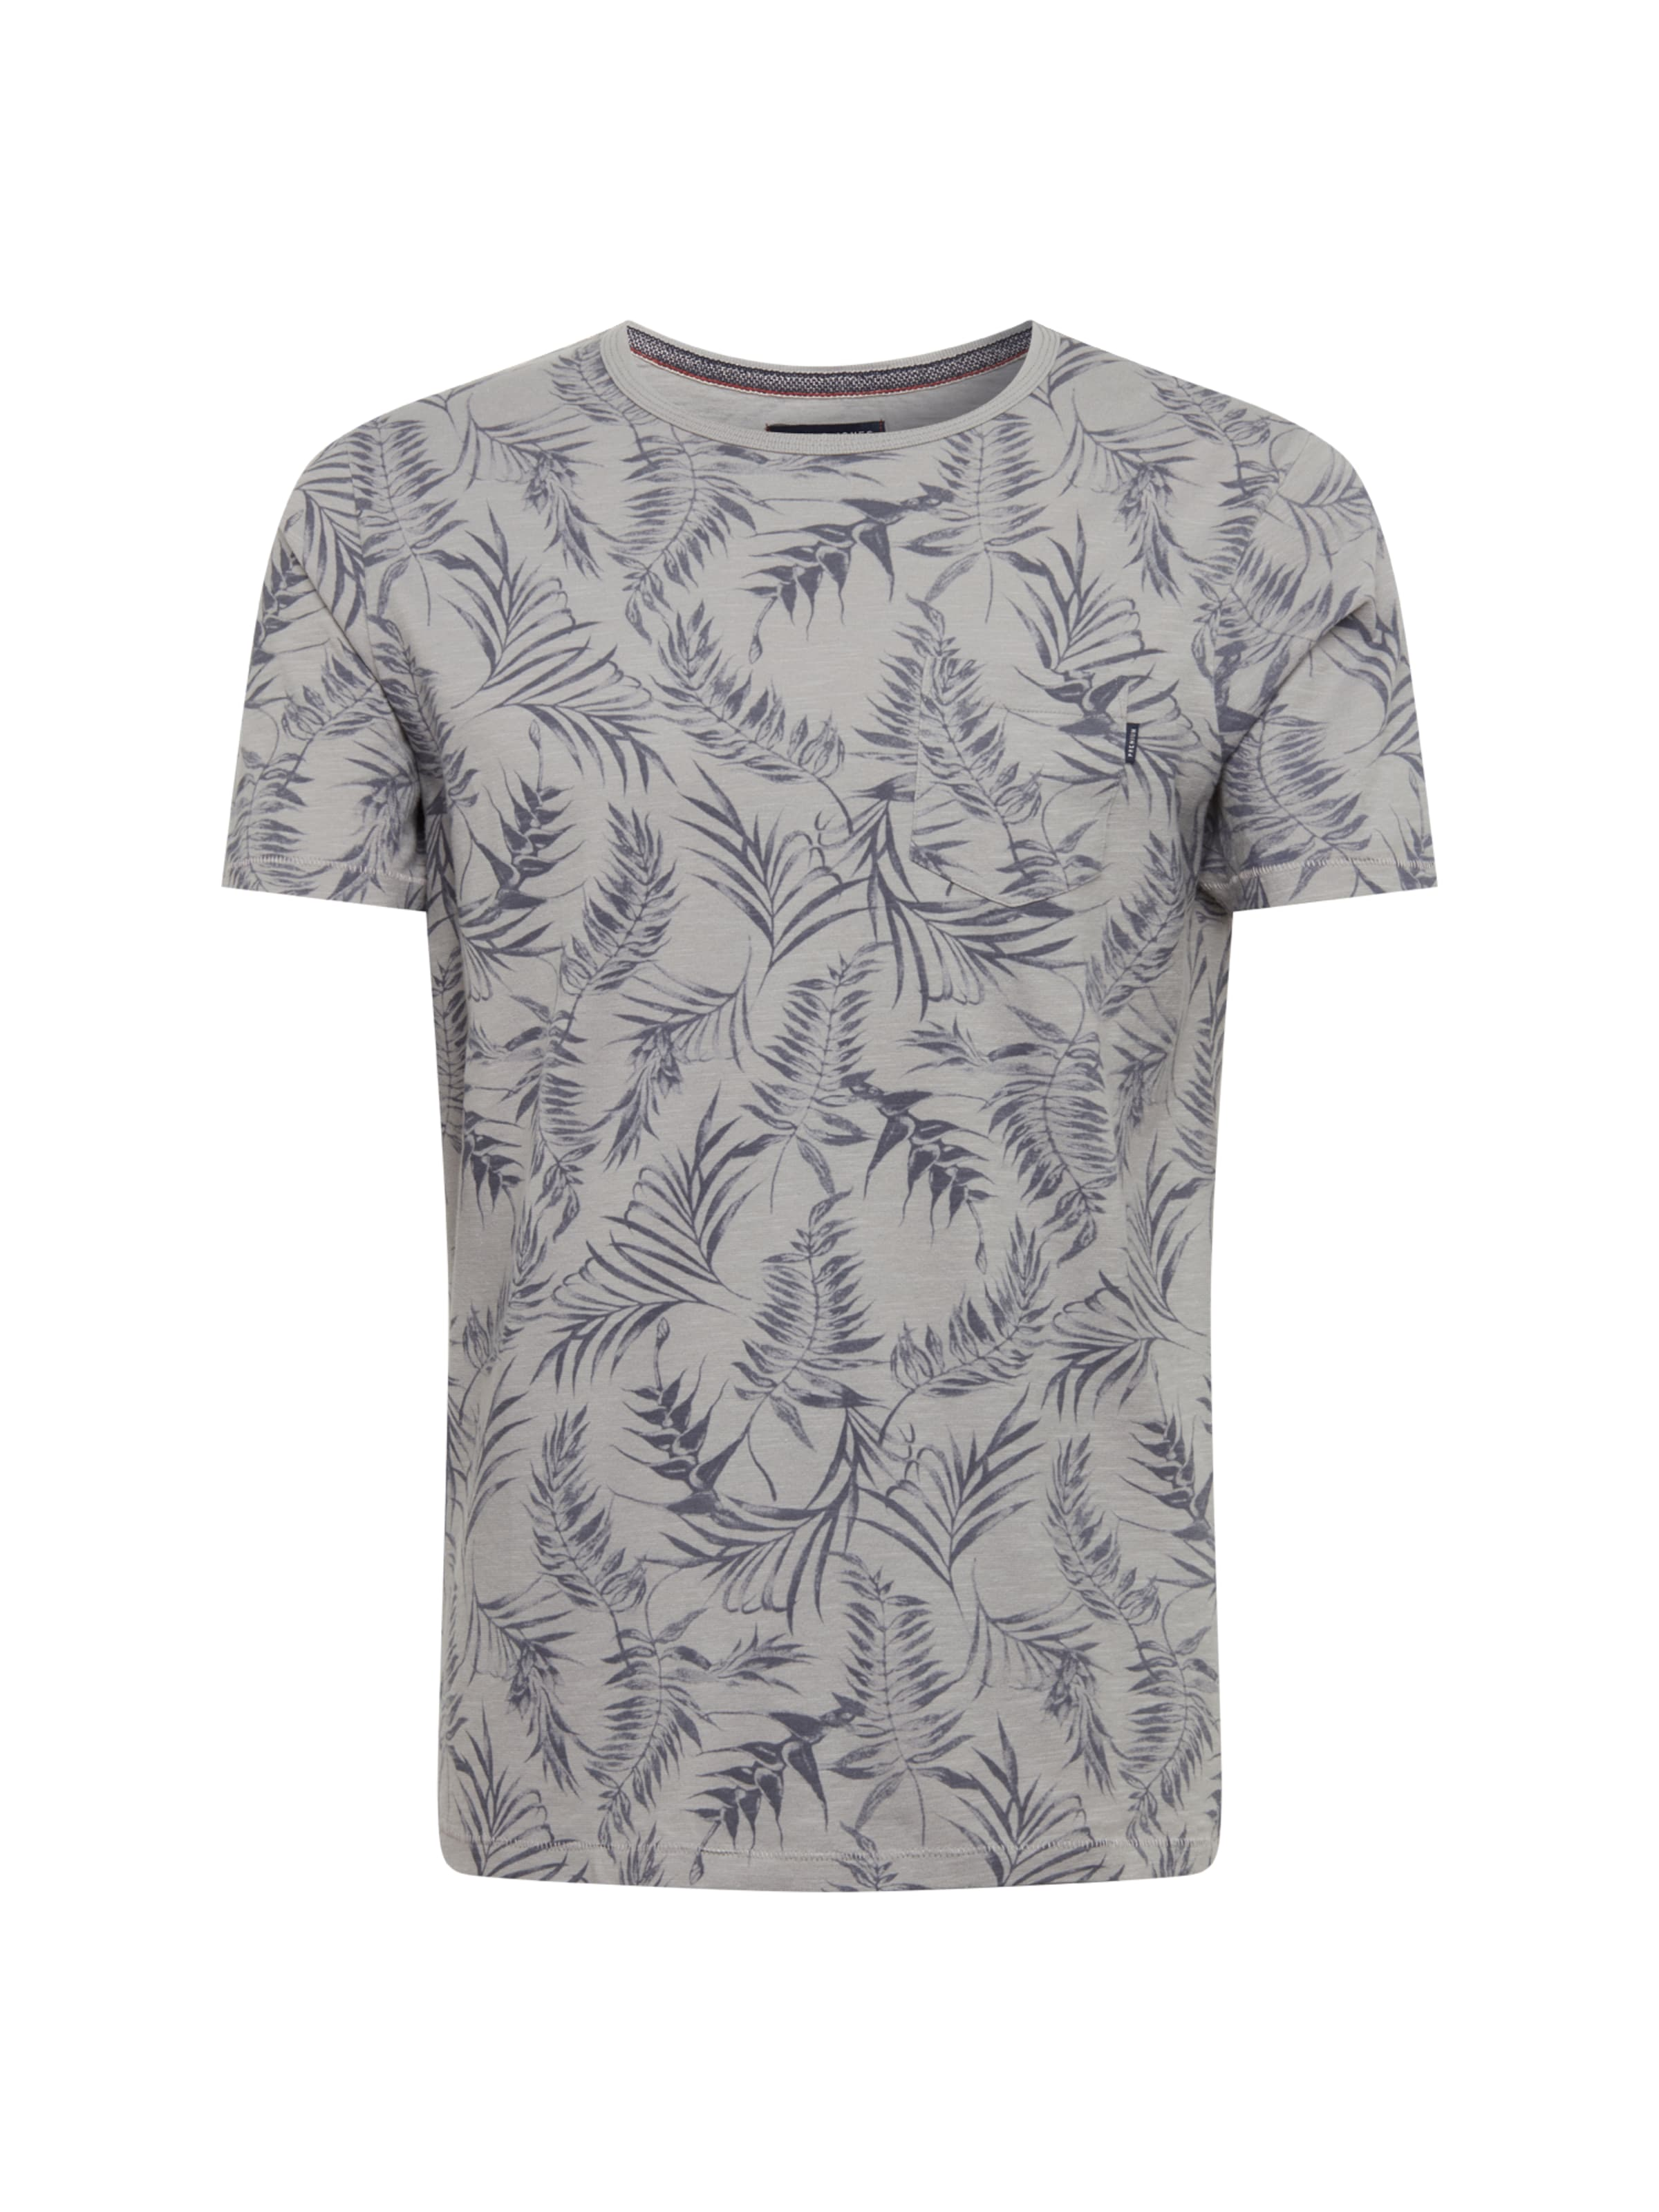 Jackamp; Chiné T shirt Jones En FoncéGris Bleu c3KJu1lTF